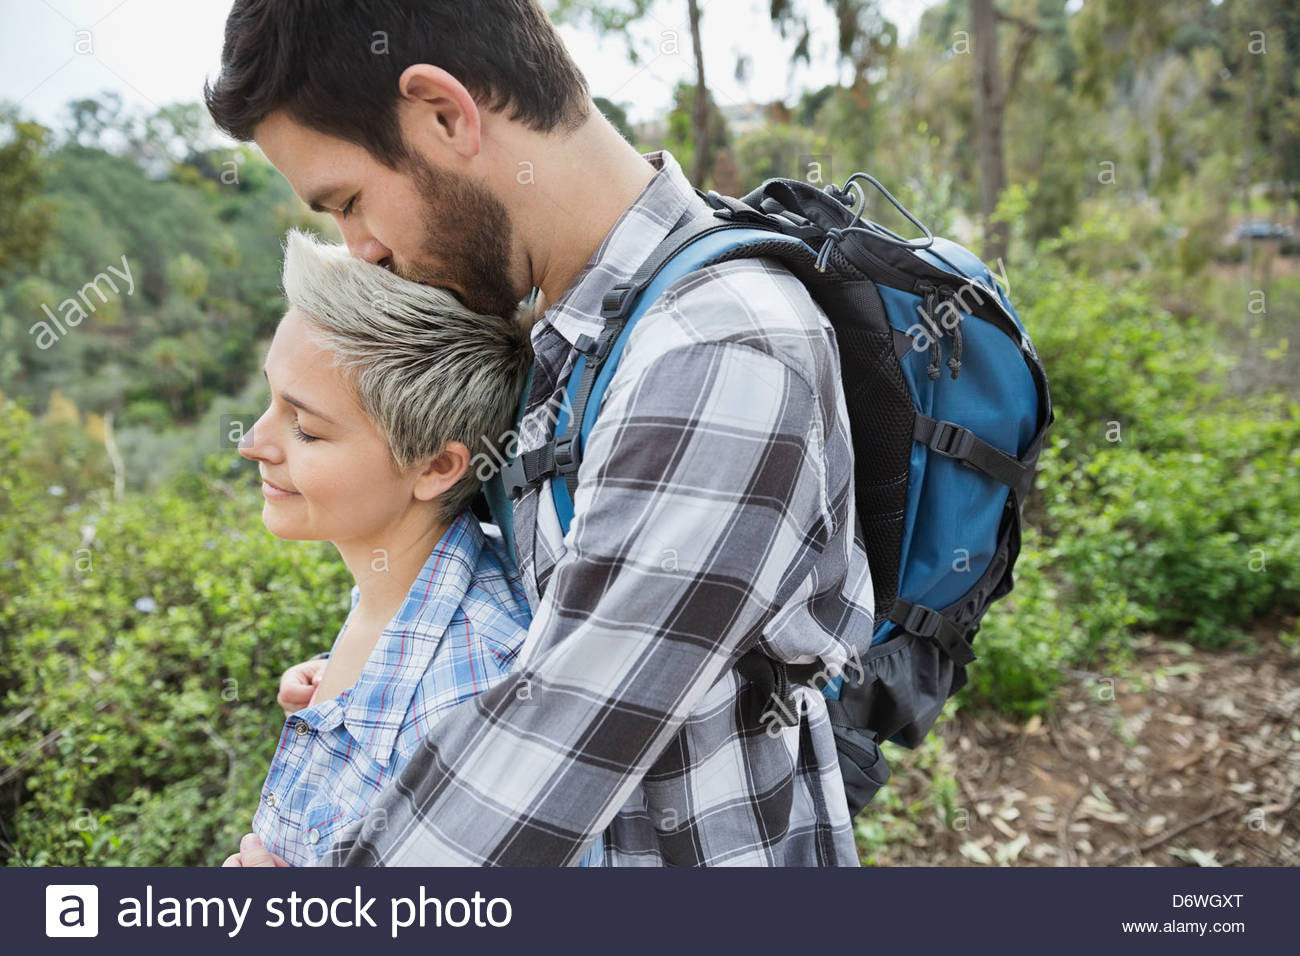 Side view of man kissing woman on head in forest - Stock Image